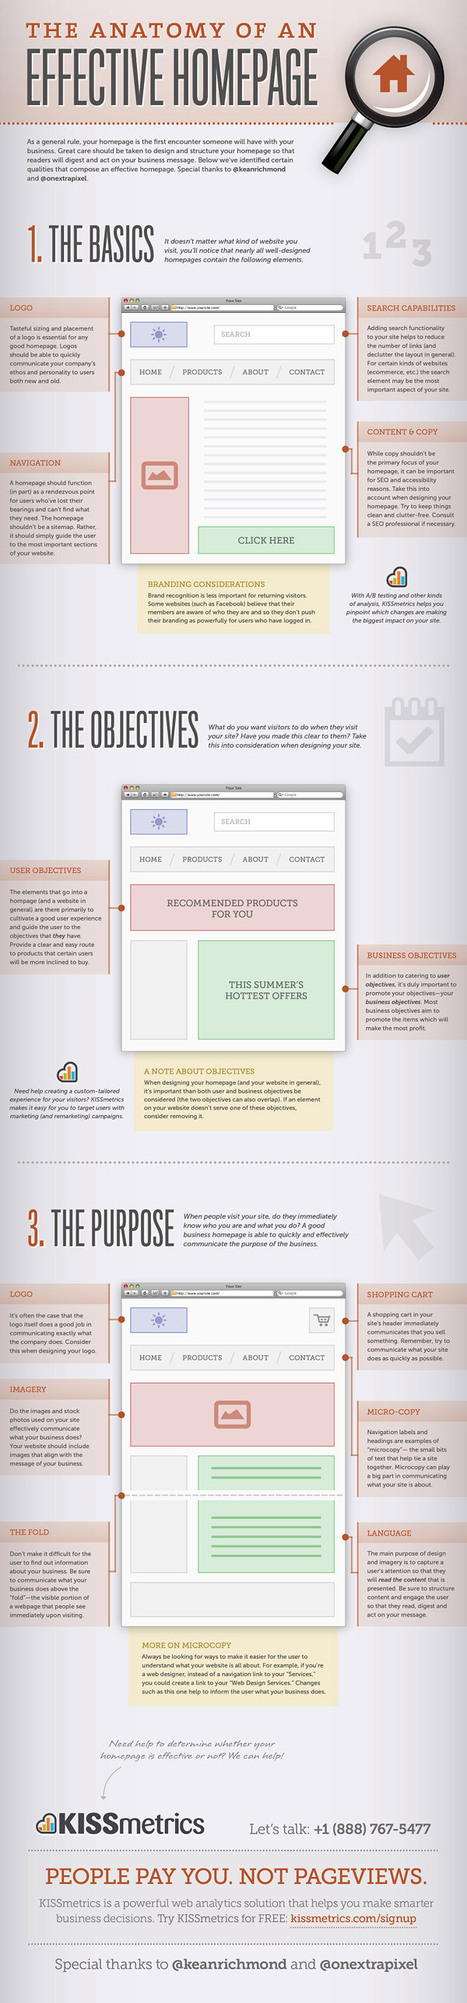 The Anatomy of an Effective Homepage | Better teaching, more learning | Scoop.it